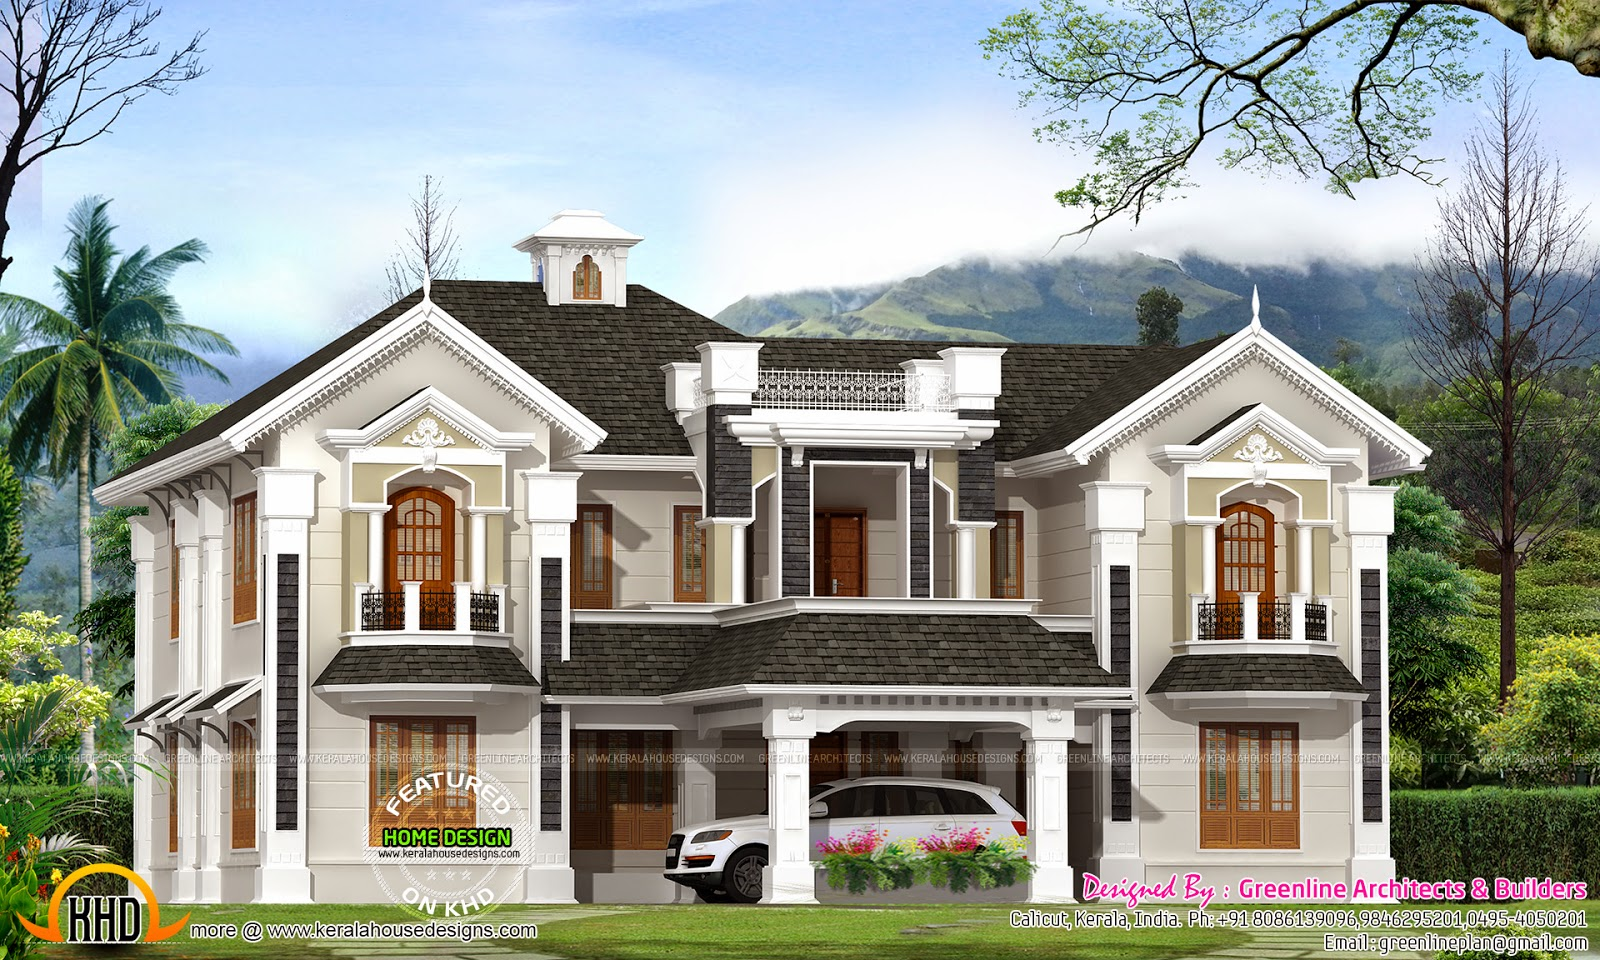 Colonial style house in kerala kerala home design and for New american style house plans